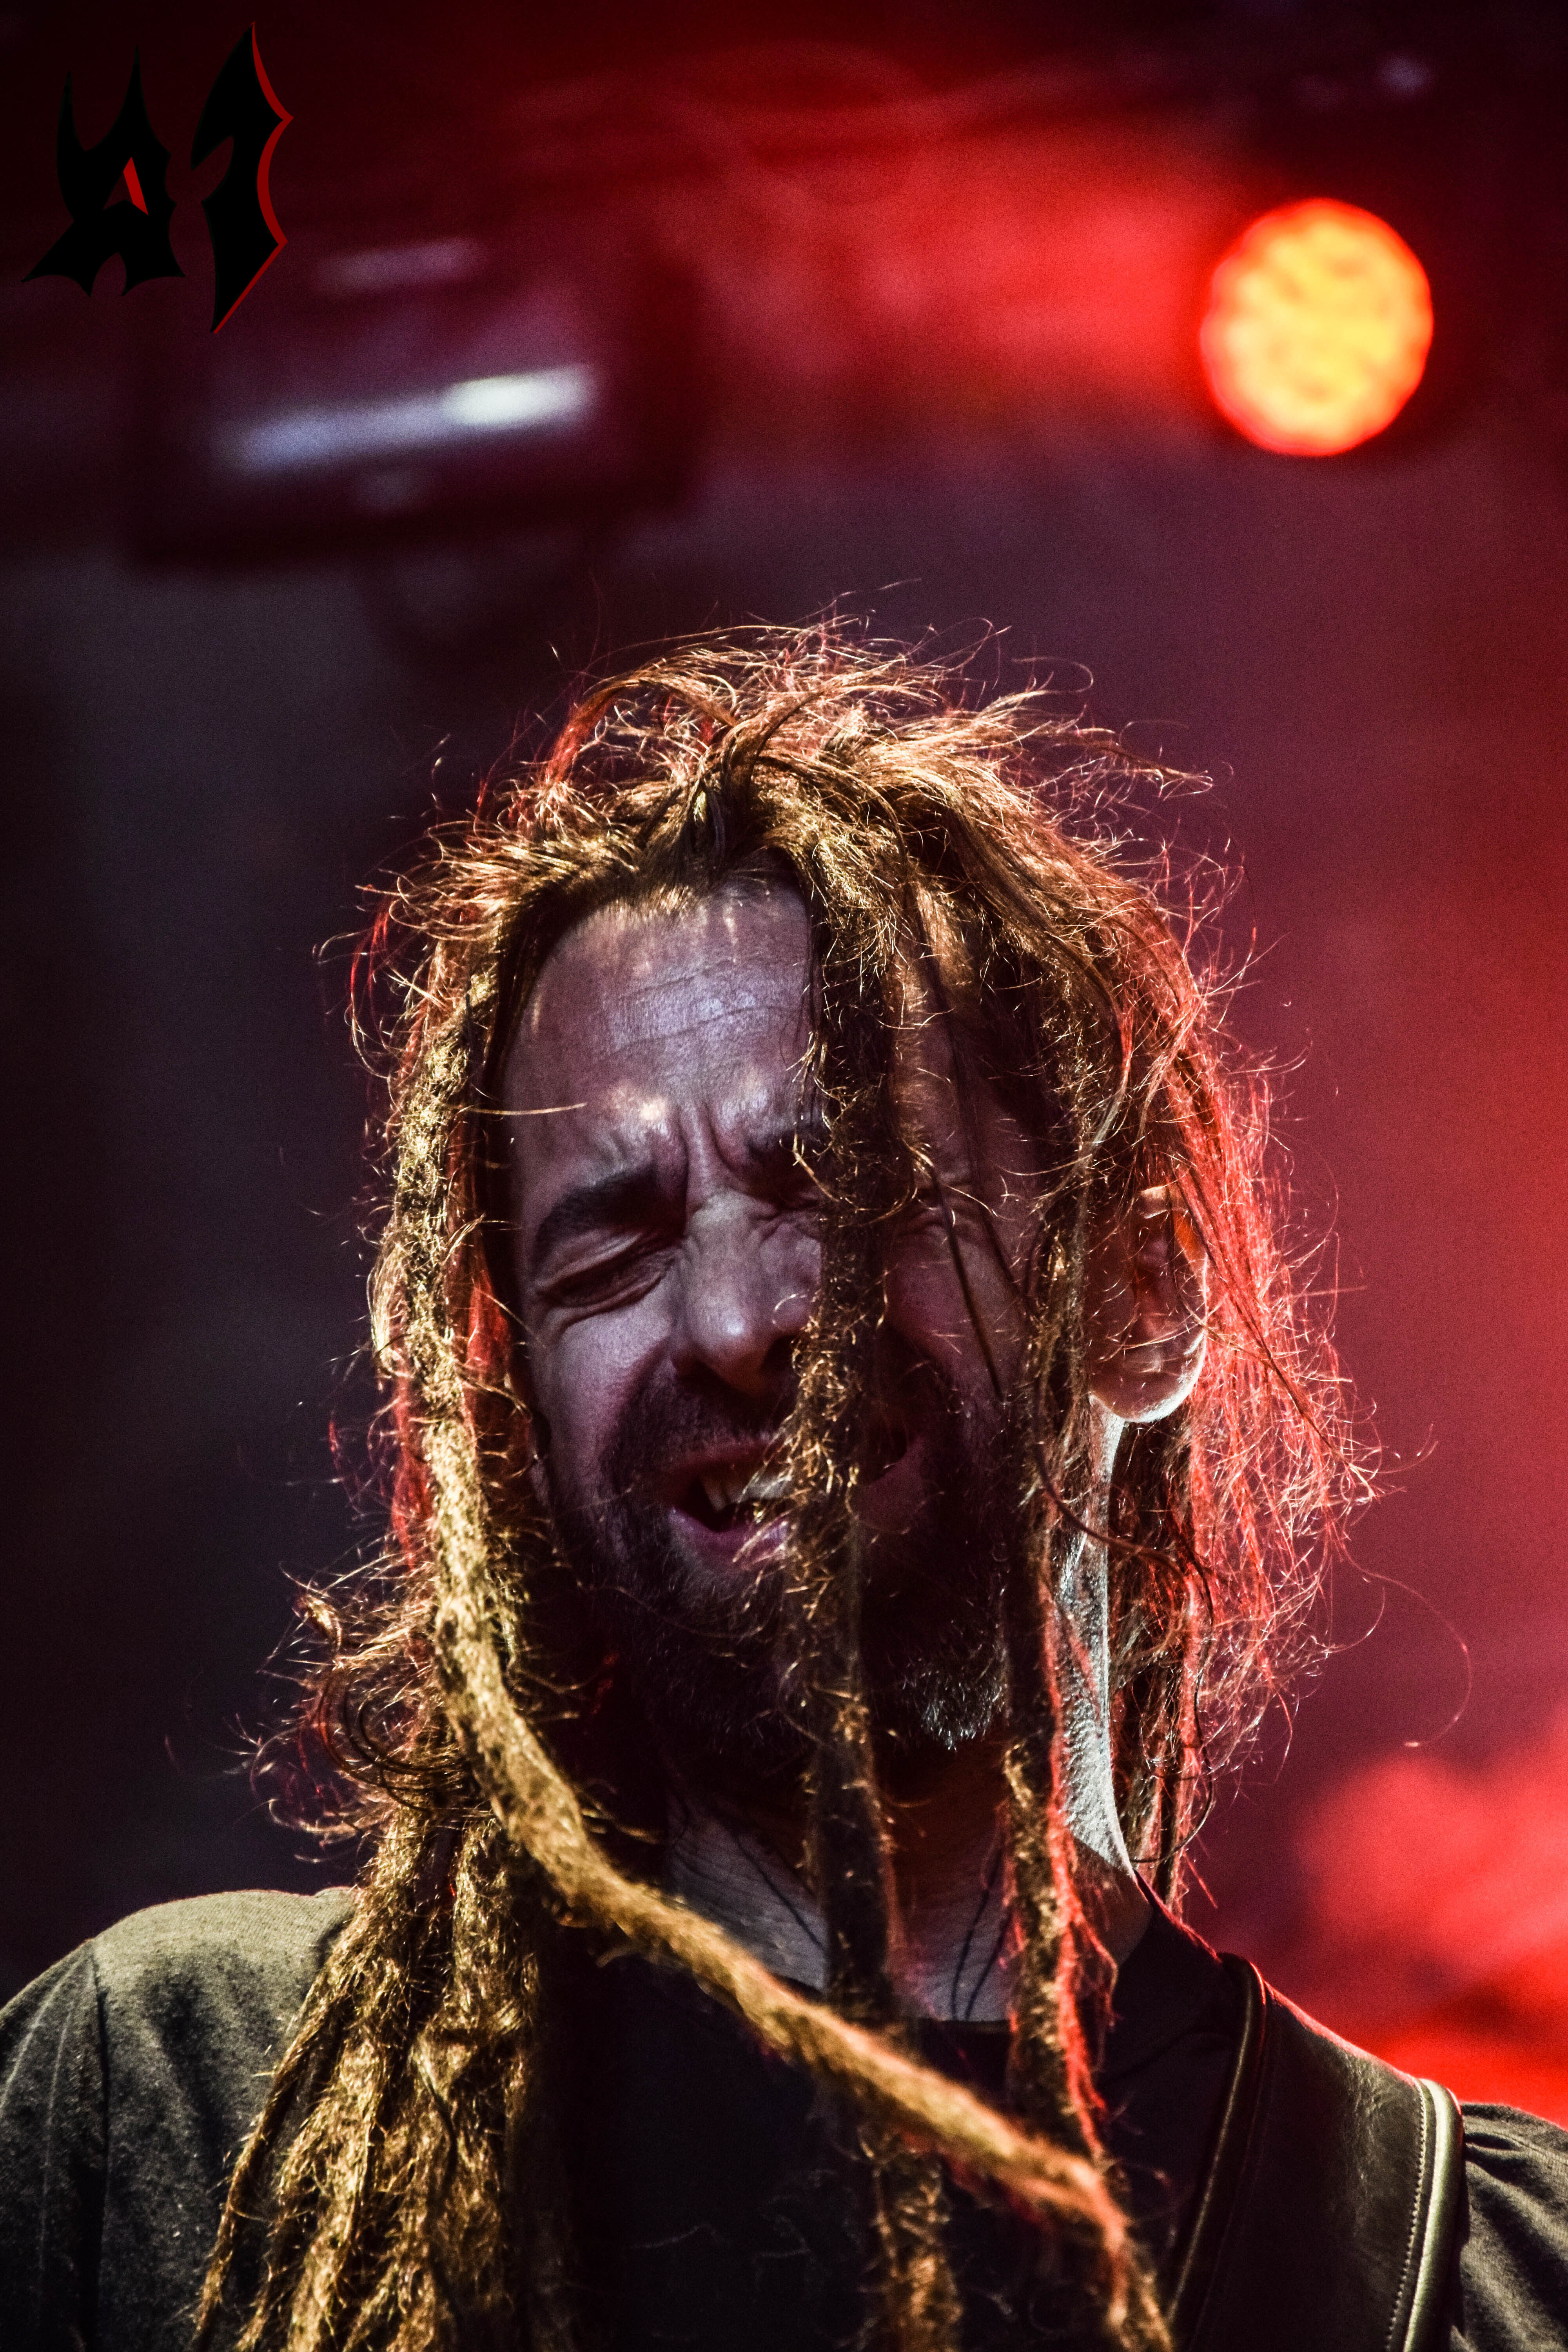 Hellfest - Day 1 - Dopethrone 6